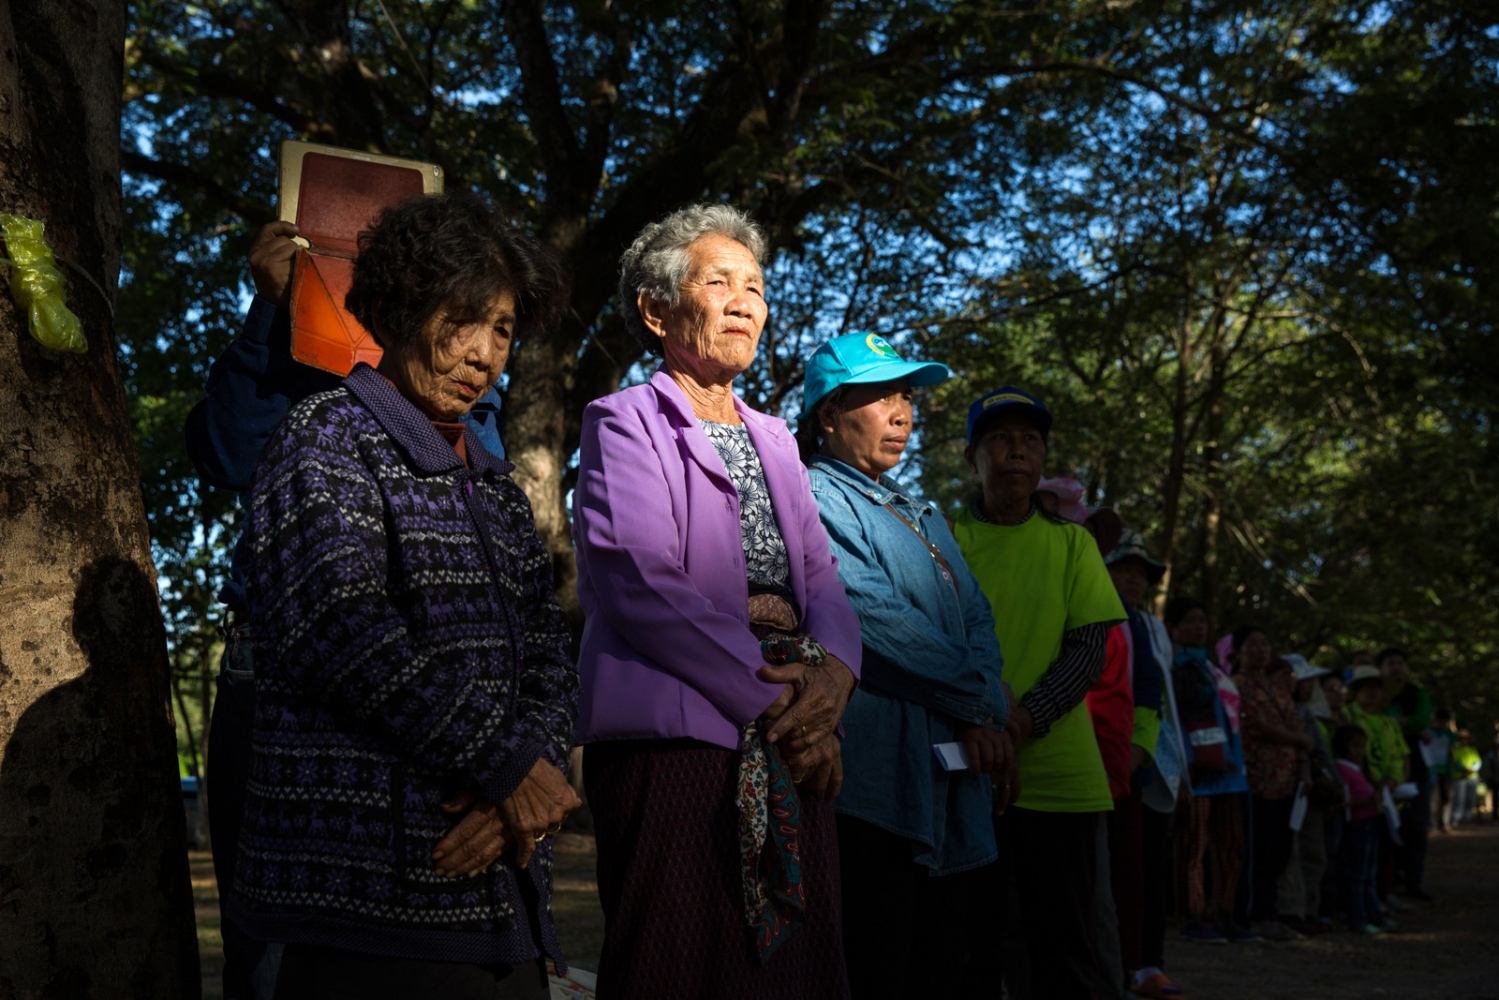 An elderly group of women listen to talks by visiting experts on the subject of mining in Northeast Thailand at Sakhon Nakhon University. Over 80% of the protest group are women who play a vital role in any such activity.